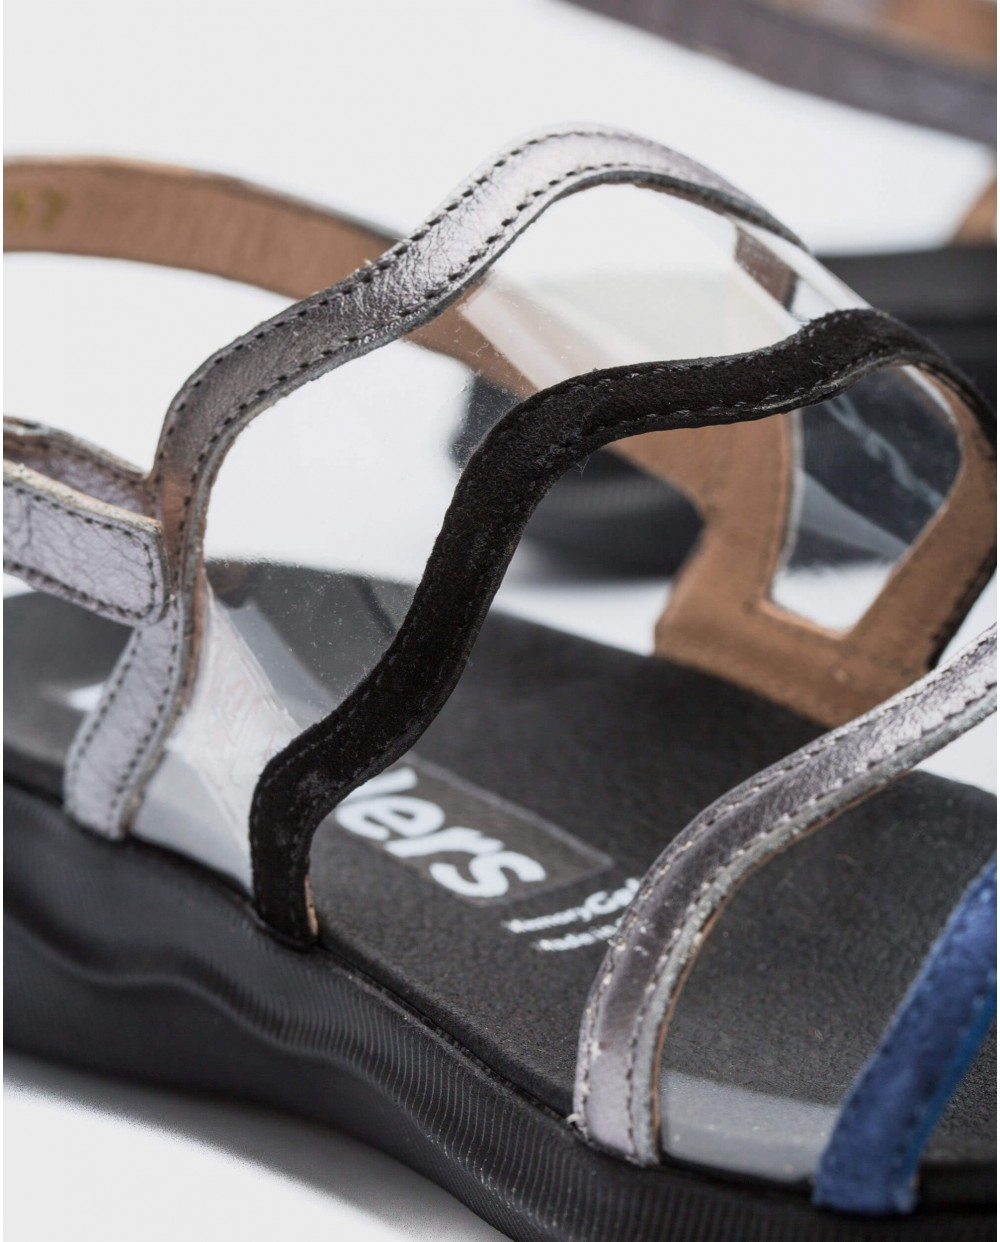 Wonders-Sandals-Sandal with vinyl detail